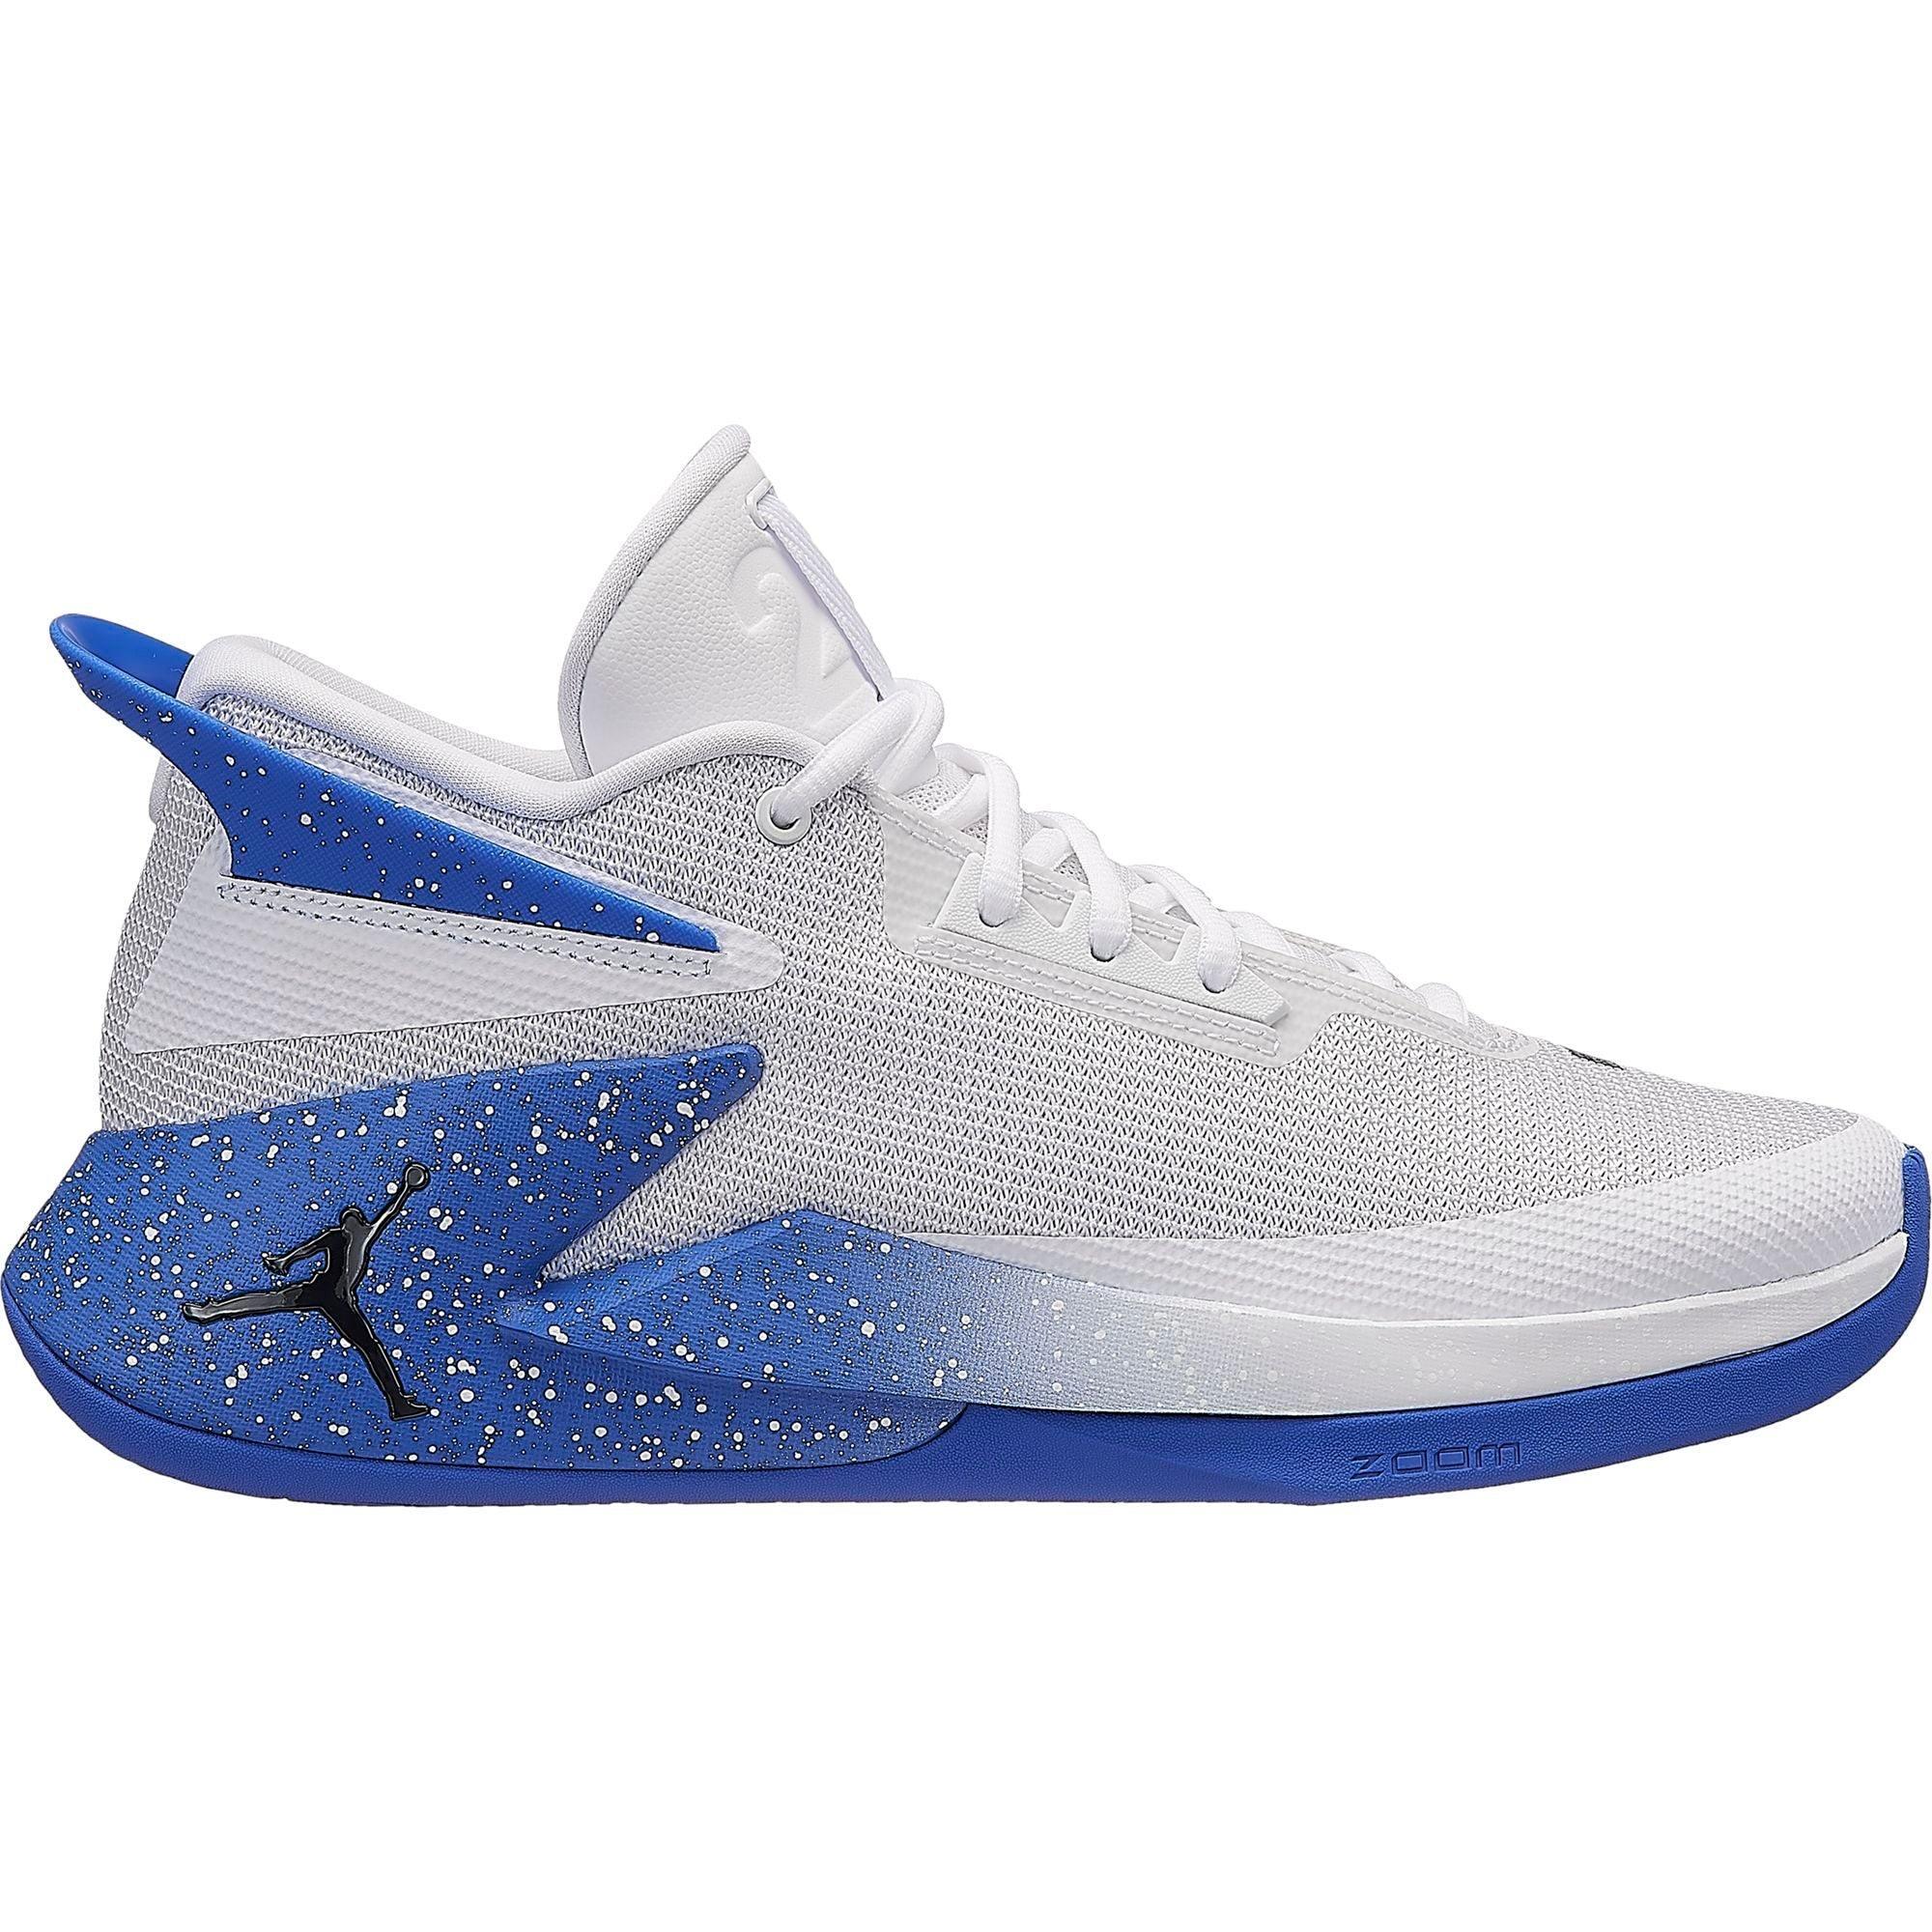 Nike Jordan Fly Lockdown Basketball Boot/Shoe - NK-AJ9499-104